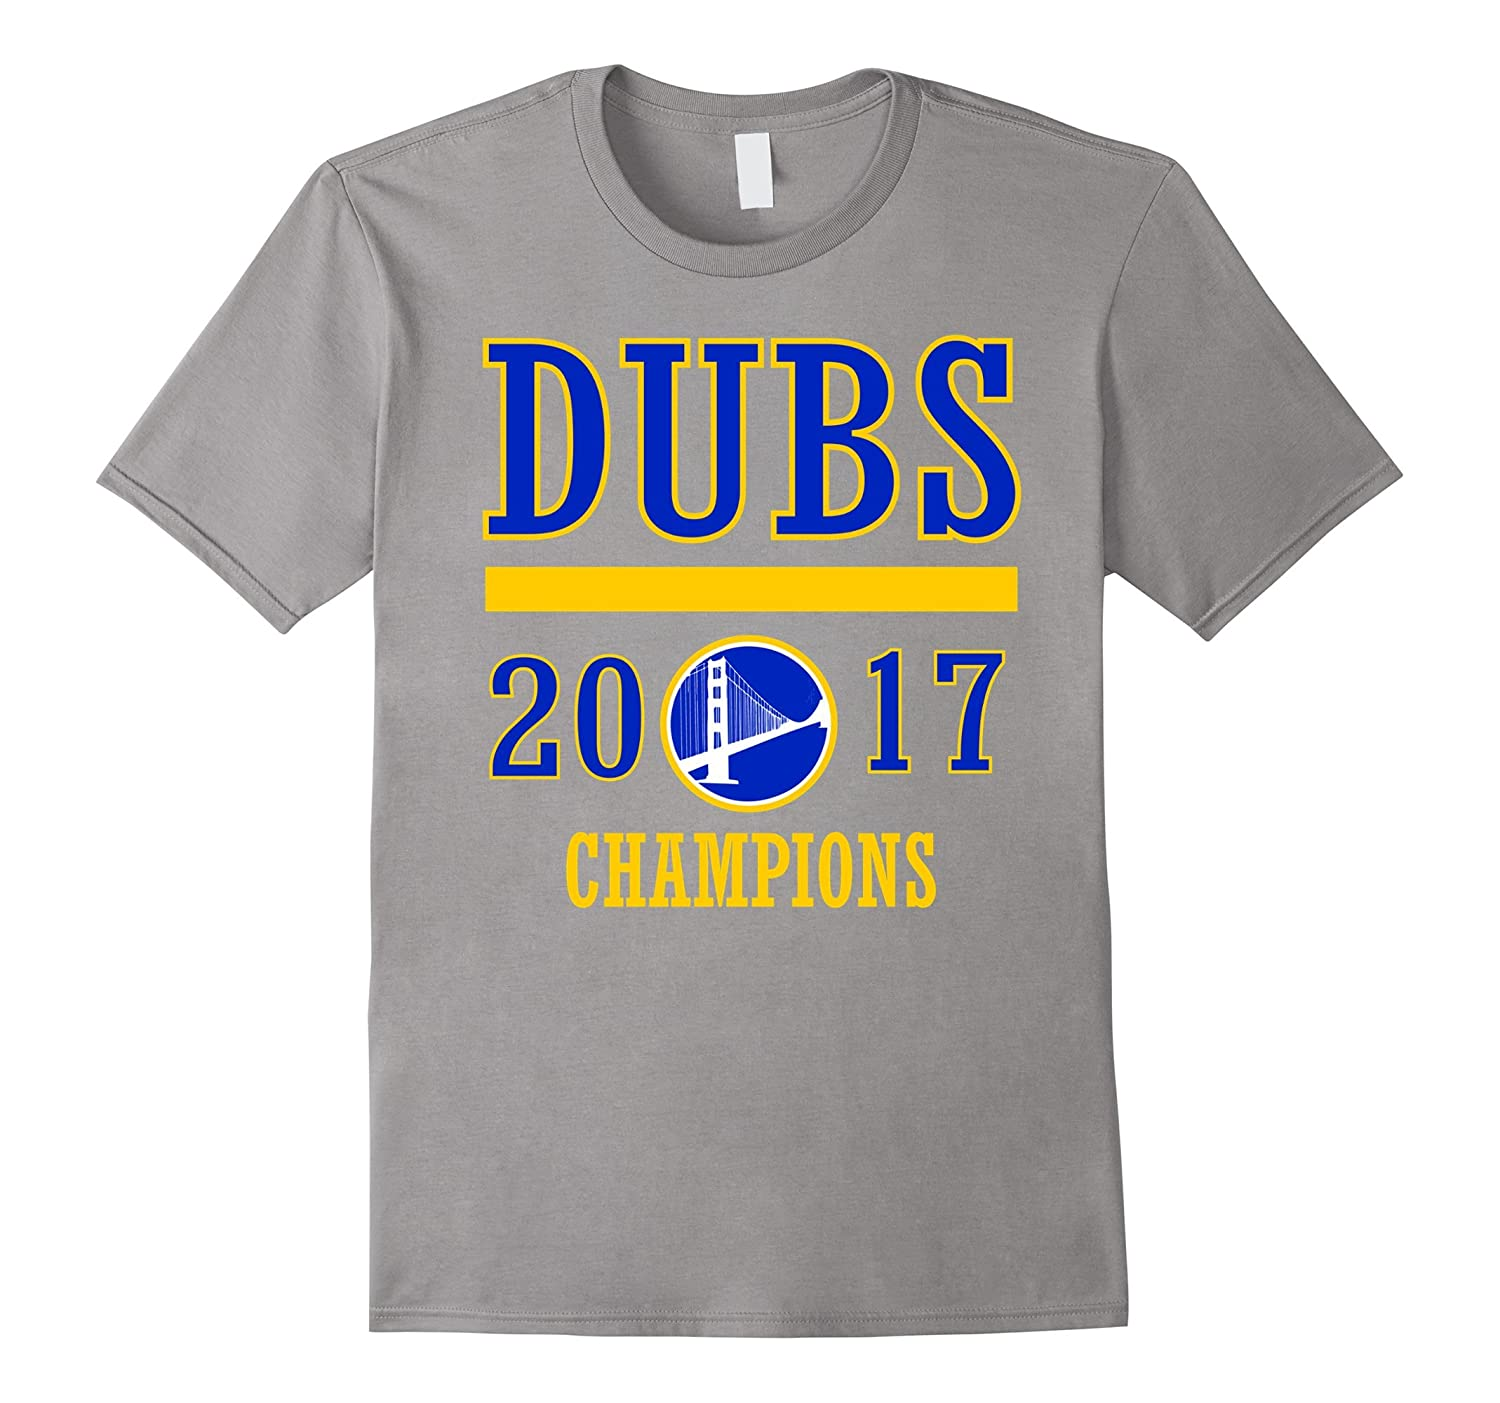 f3a3a21eadbe Golden state dub 2017 champs Shirt for men women and kids-PL – Polozatee